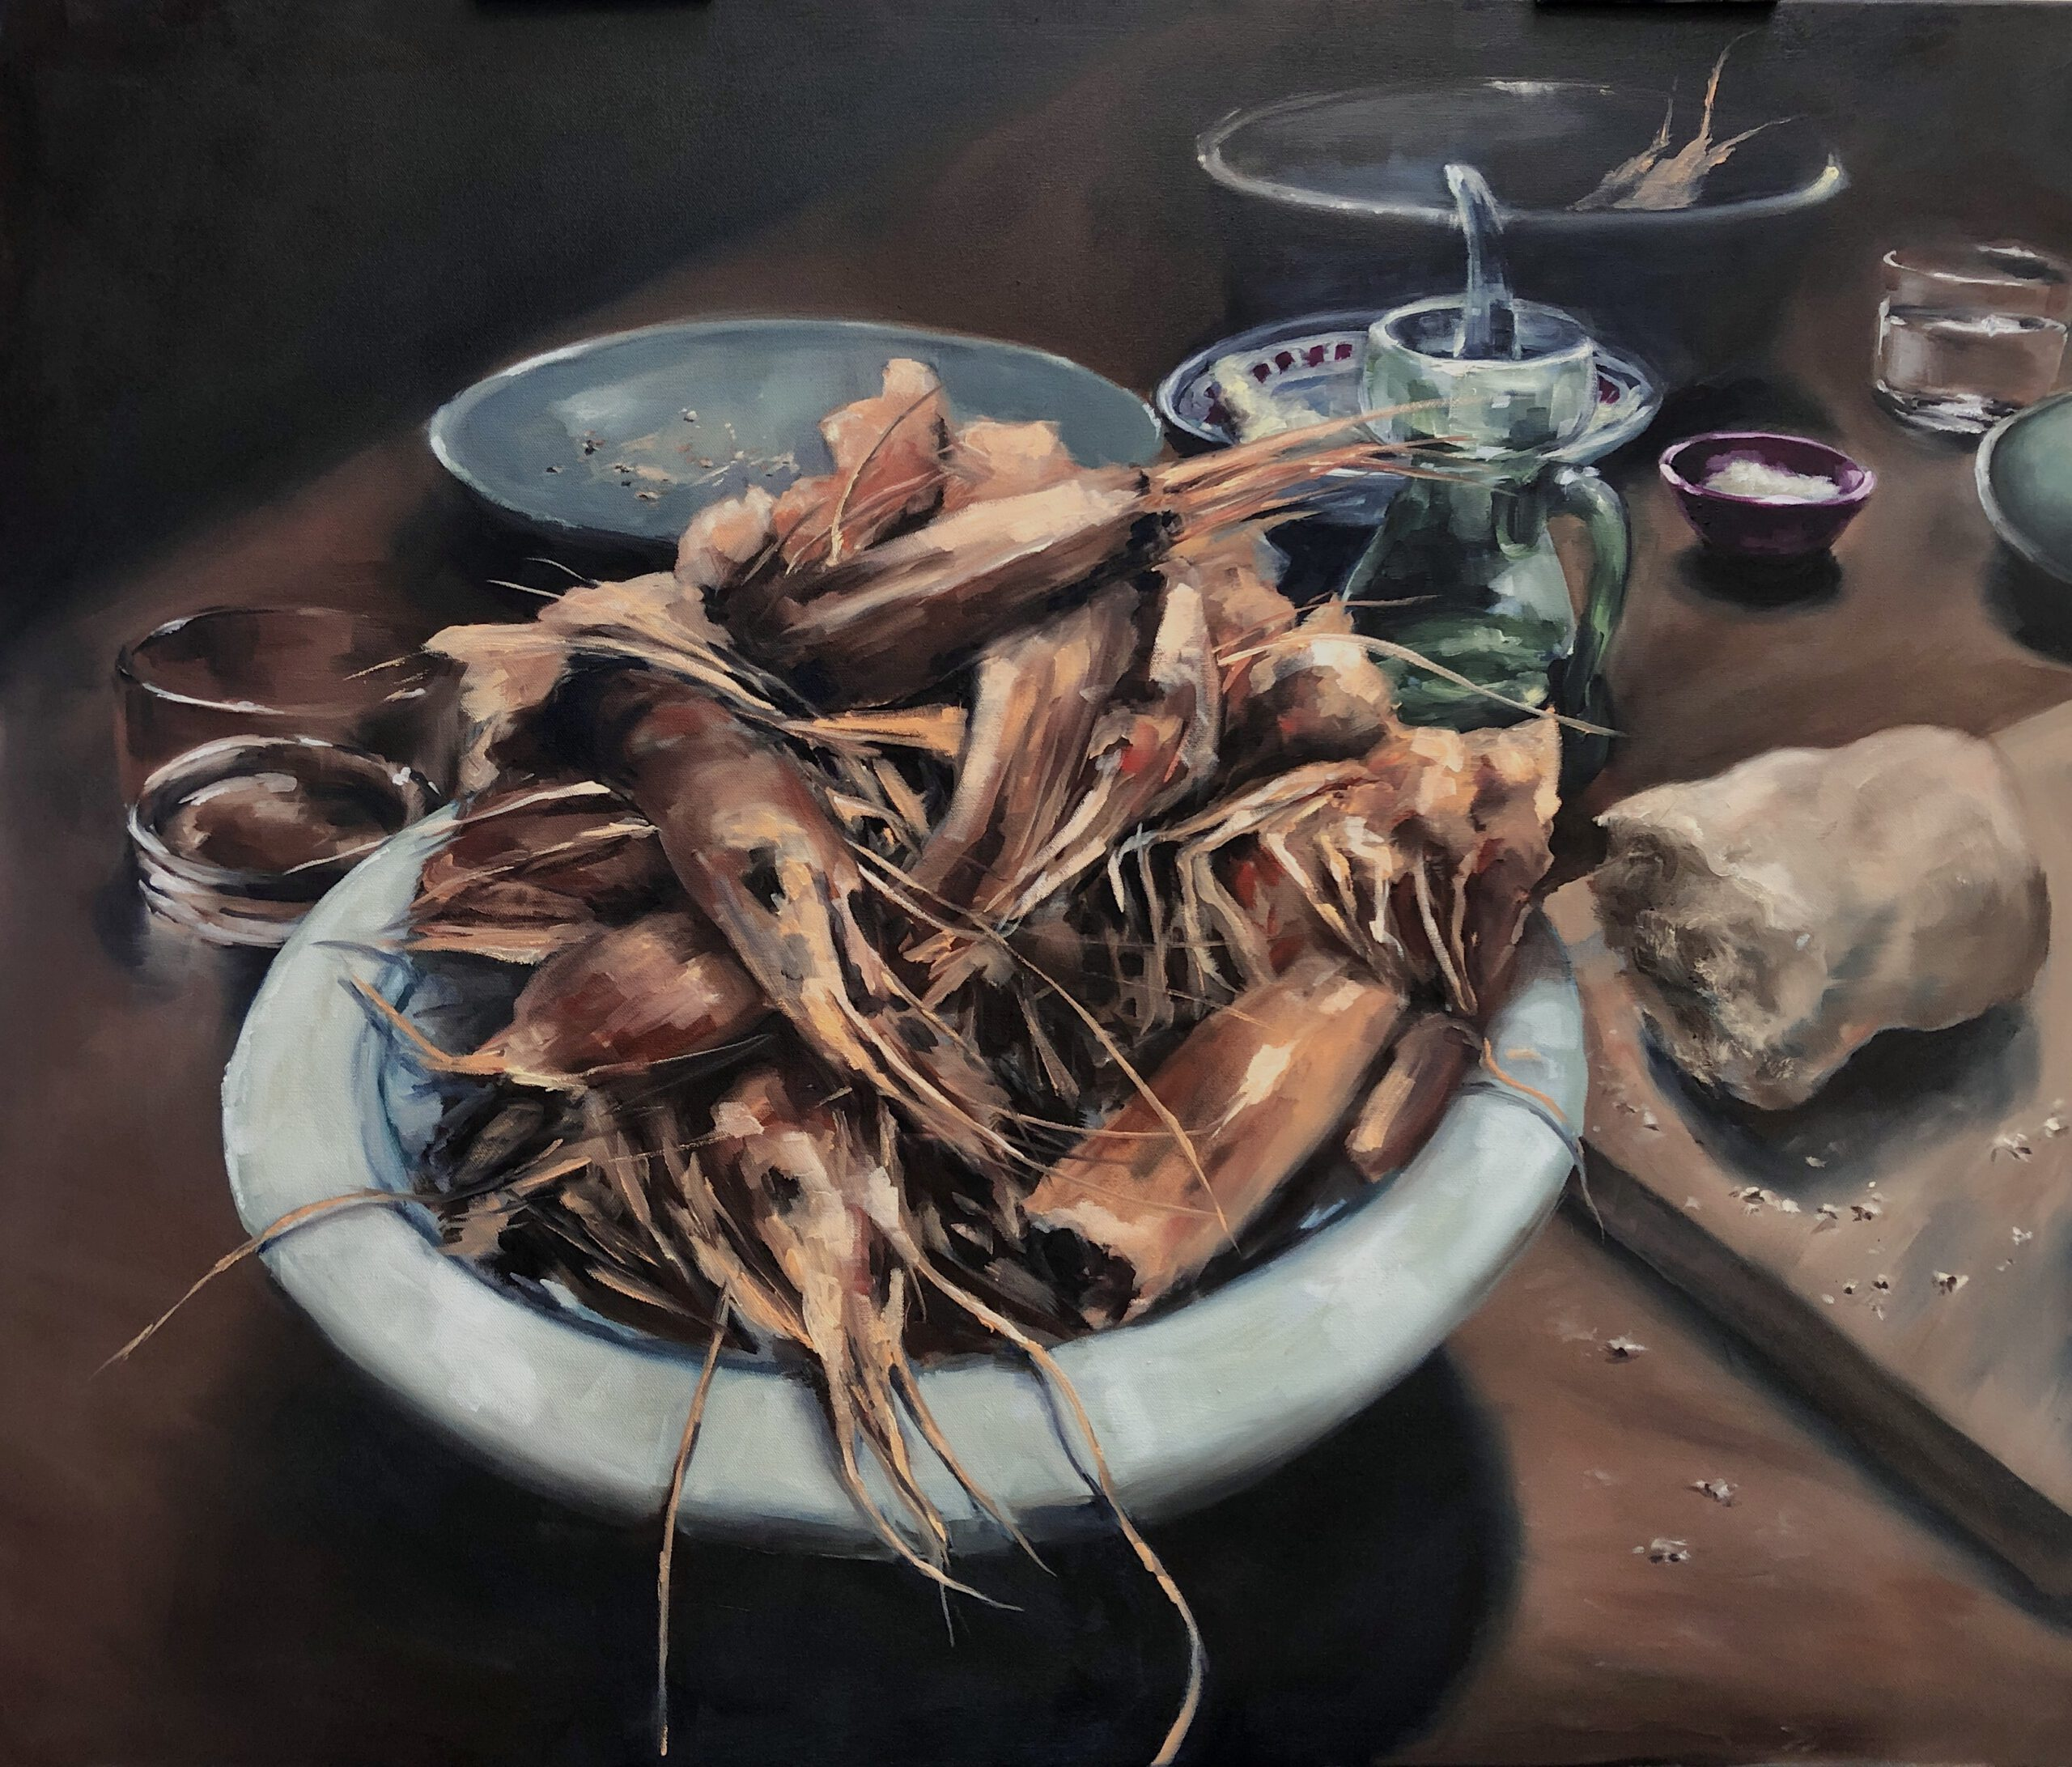 'Dinner for one', Fingerfood, 110x130cm, Öl auf Leinwand